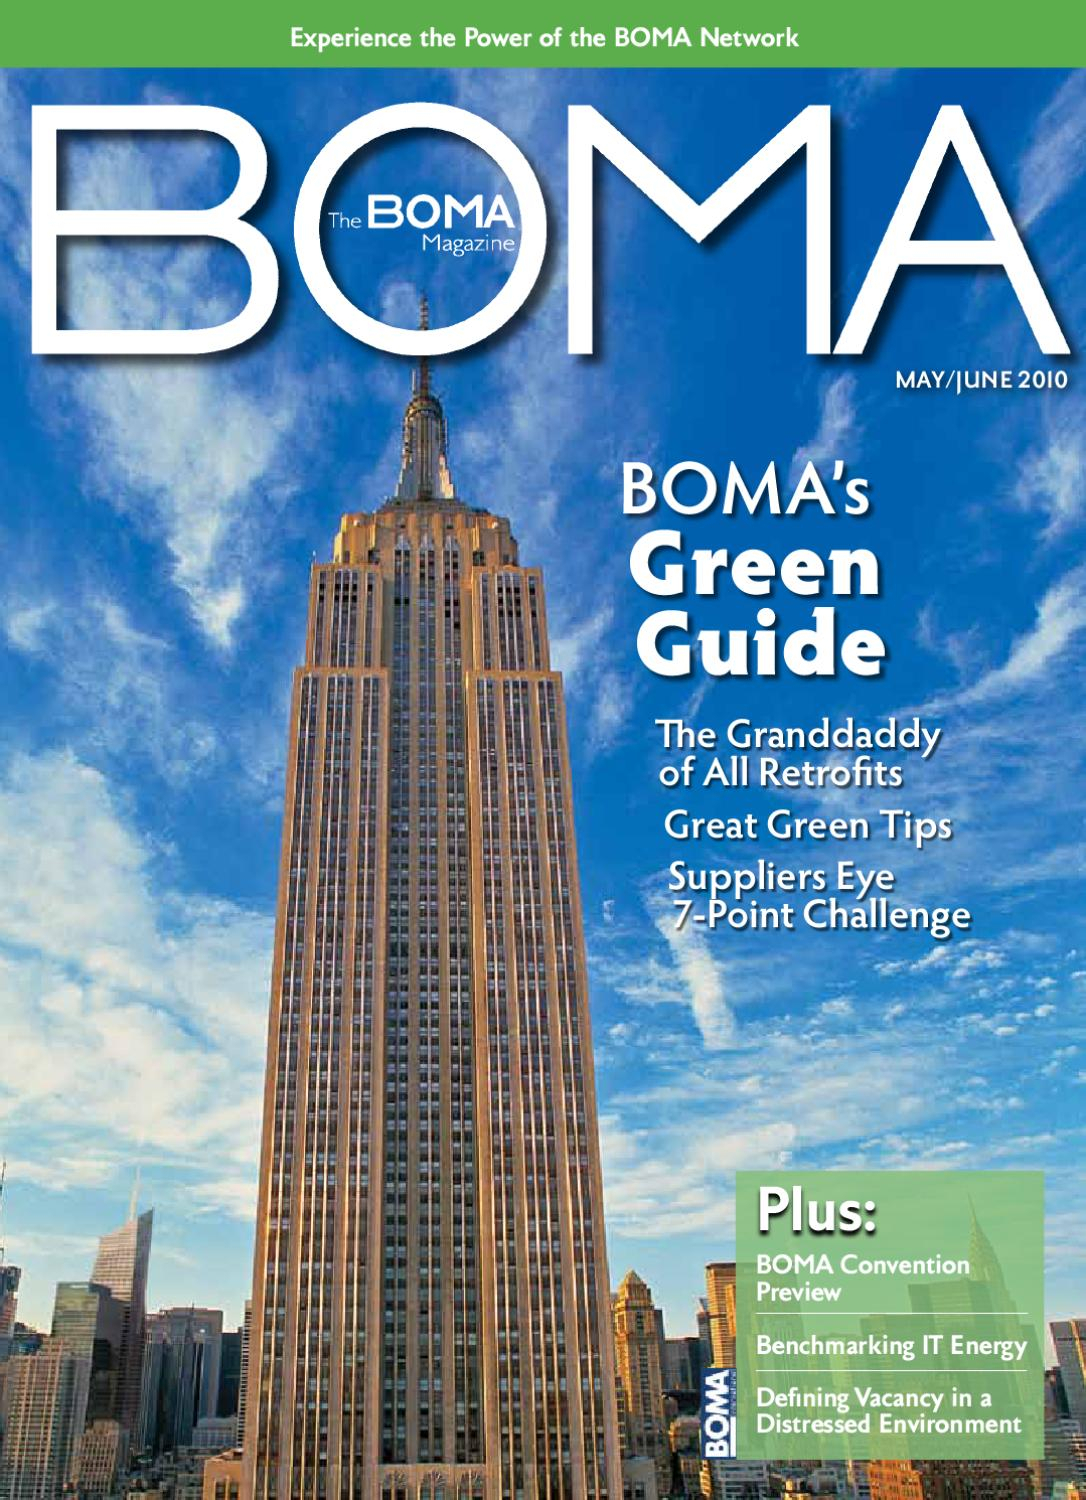 Boma 2010 Spreadsheet With The Boma Magazine  May/june 2010Lprats  Issuu Boma 2010 Spreadsheet Printable Spreadshee Printable Spreadshee boma 2010 spreadsheet